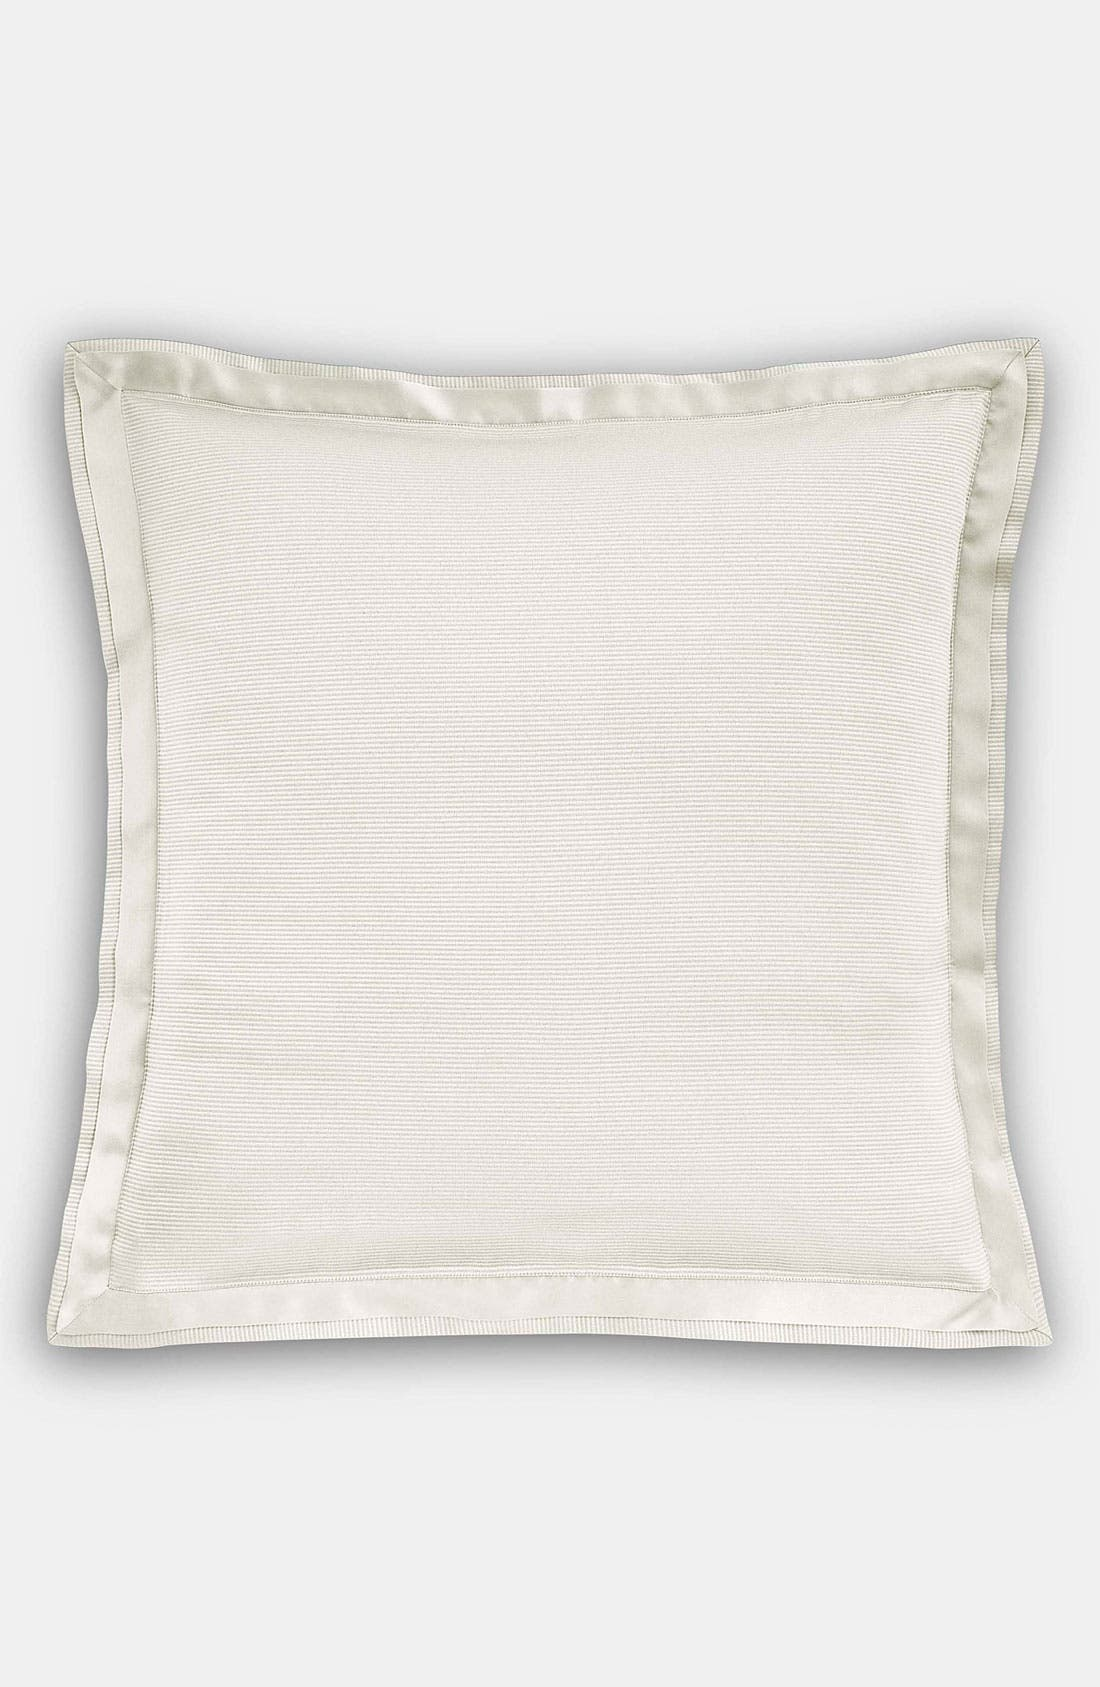 Alternate Image 1 Selected - Donna Karan 'Ottoman' Euro Sham (Online Only)